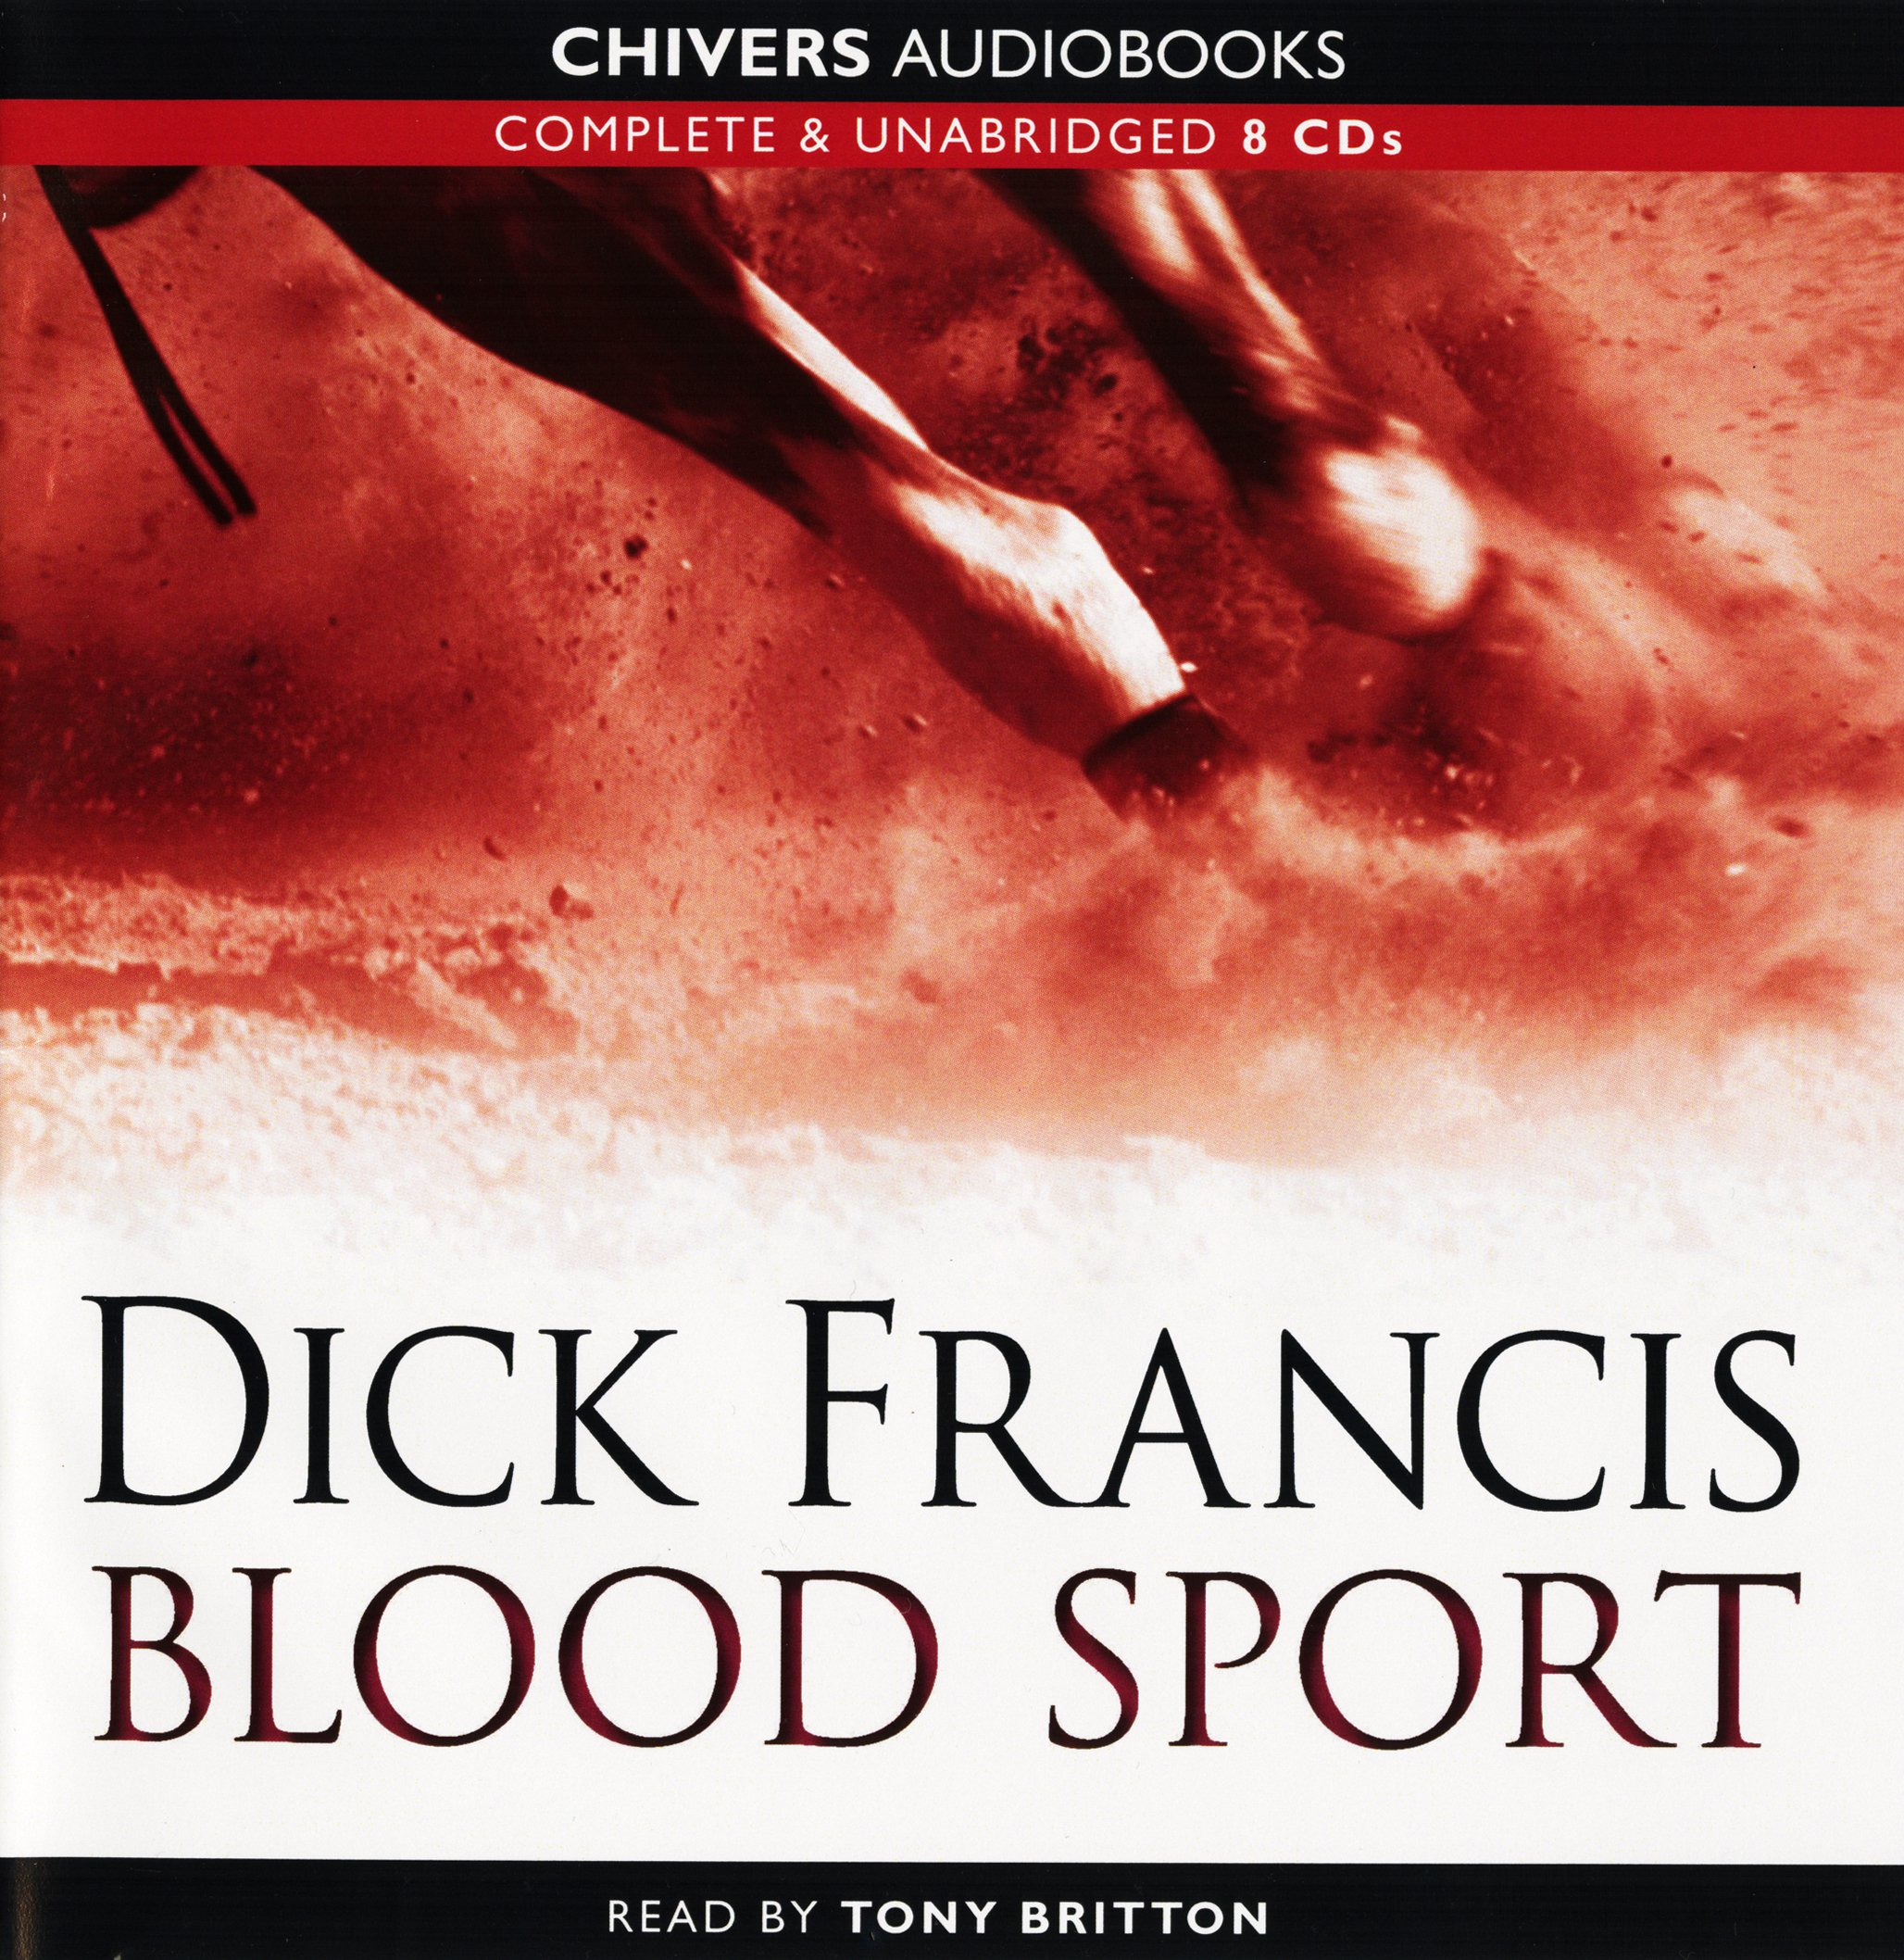 Blood Sport: by Dick Francis (Unabridged Audiobook 8CDs)